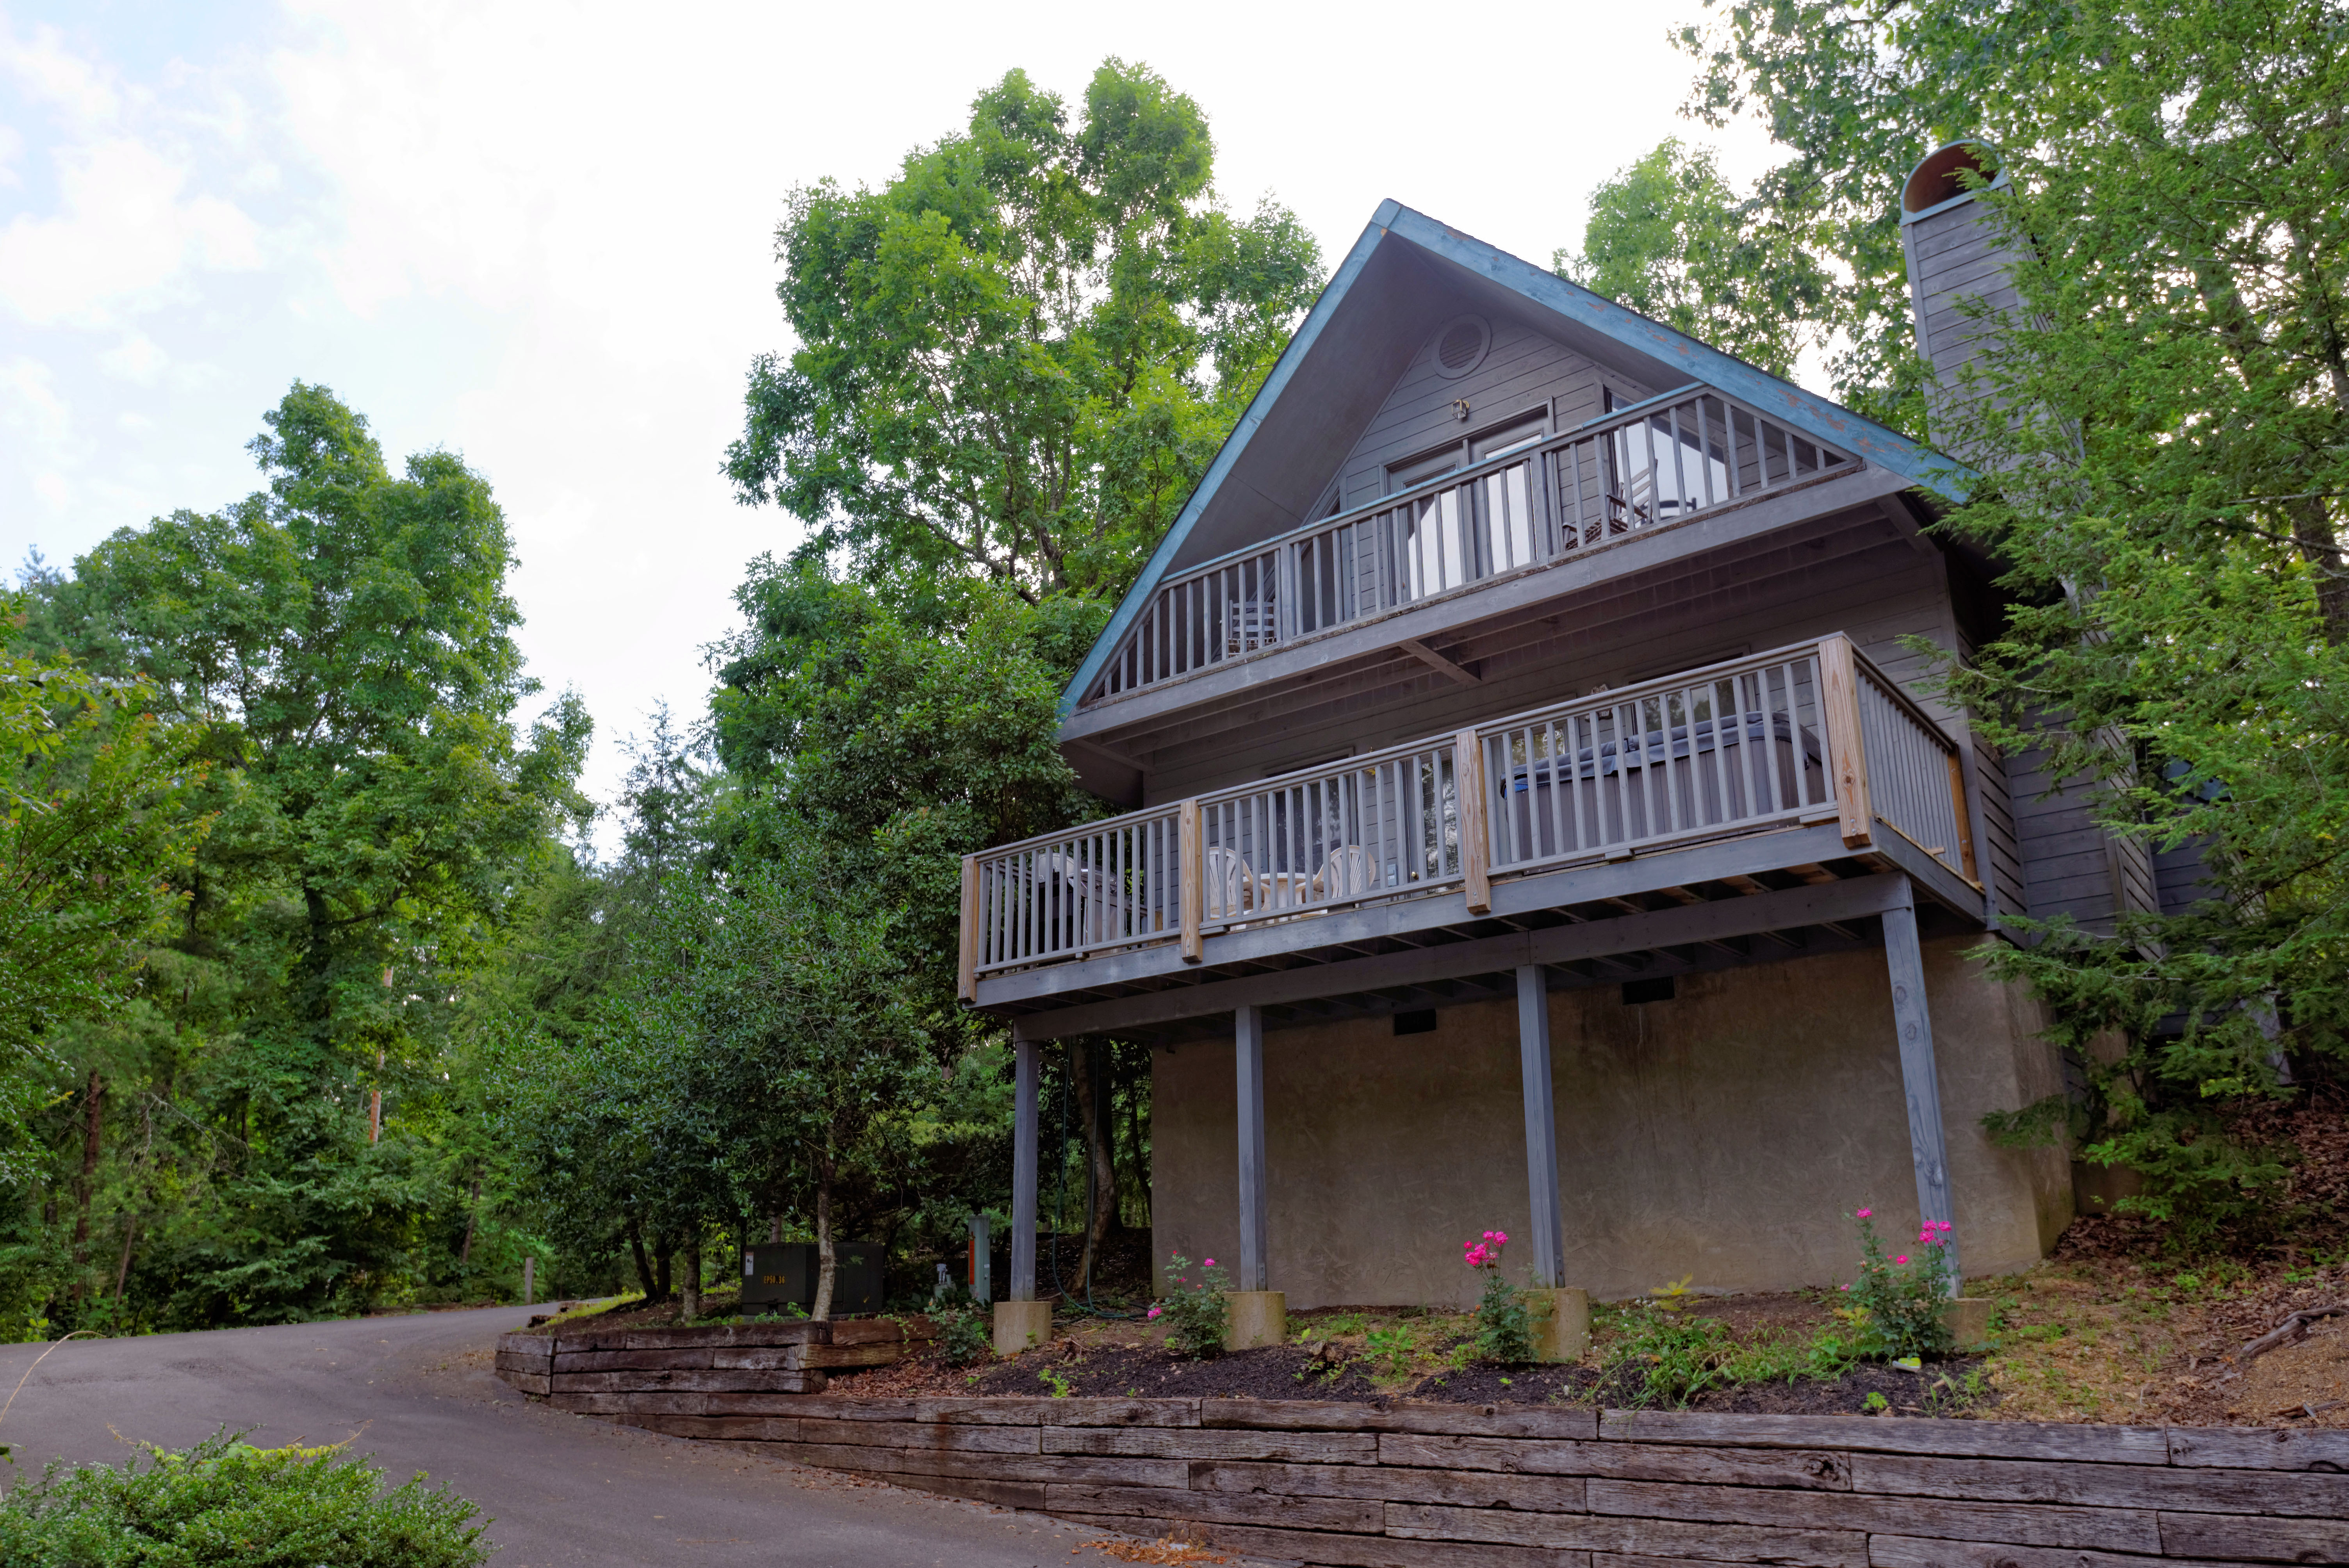 black singles in pigeon forge Black bear cove is one of many pigeon forge cabins for rent at eagles ridge resort this 2 bedroom cabin rental sleeps up to 7 people and  er94, black bear cove, .